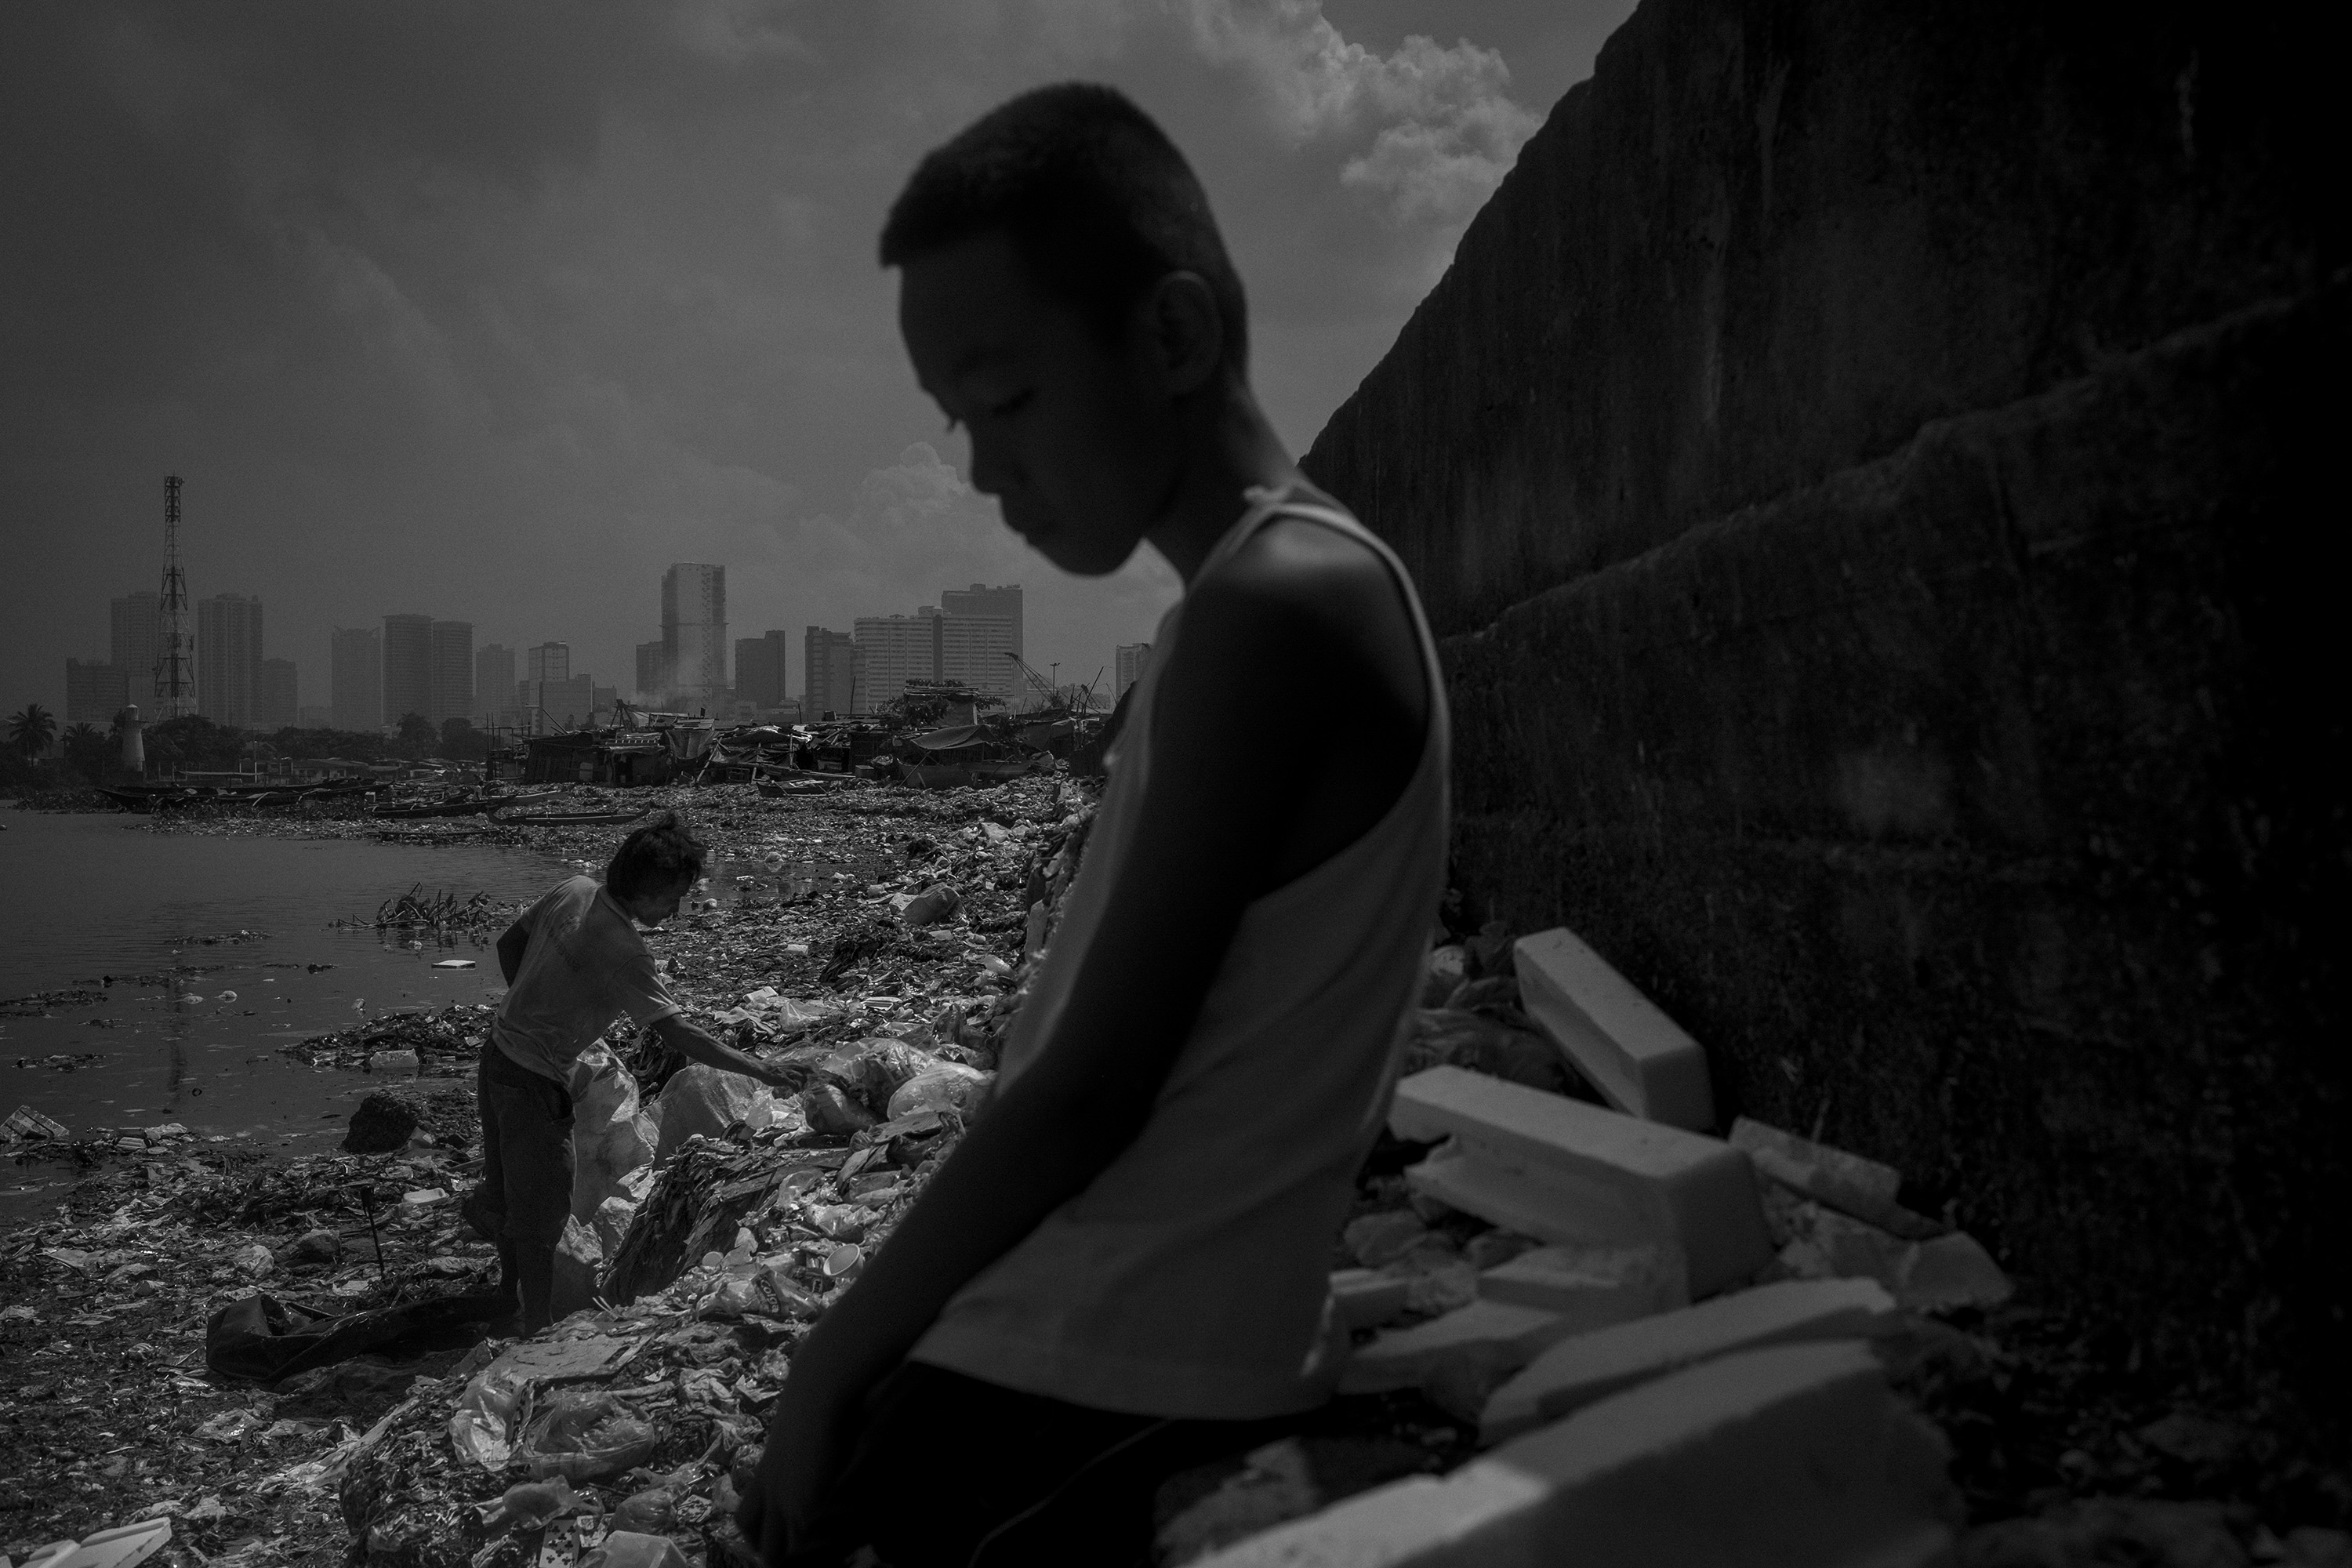 Arjay Onbrog looks to domestic waste in Pasig River as Hilario Bomong tries to collect recyclables in Baseco, Manila, Philippines, September 2018. At the Port area is the well-known Baseco compound, where thousands of families are out of sight of those who live every day in Metro Manila. From Baseco it's possible to see a garbage patch running along the bank, collectors are as natural as the pollution.